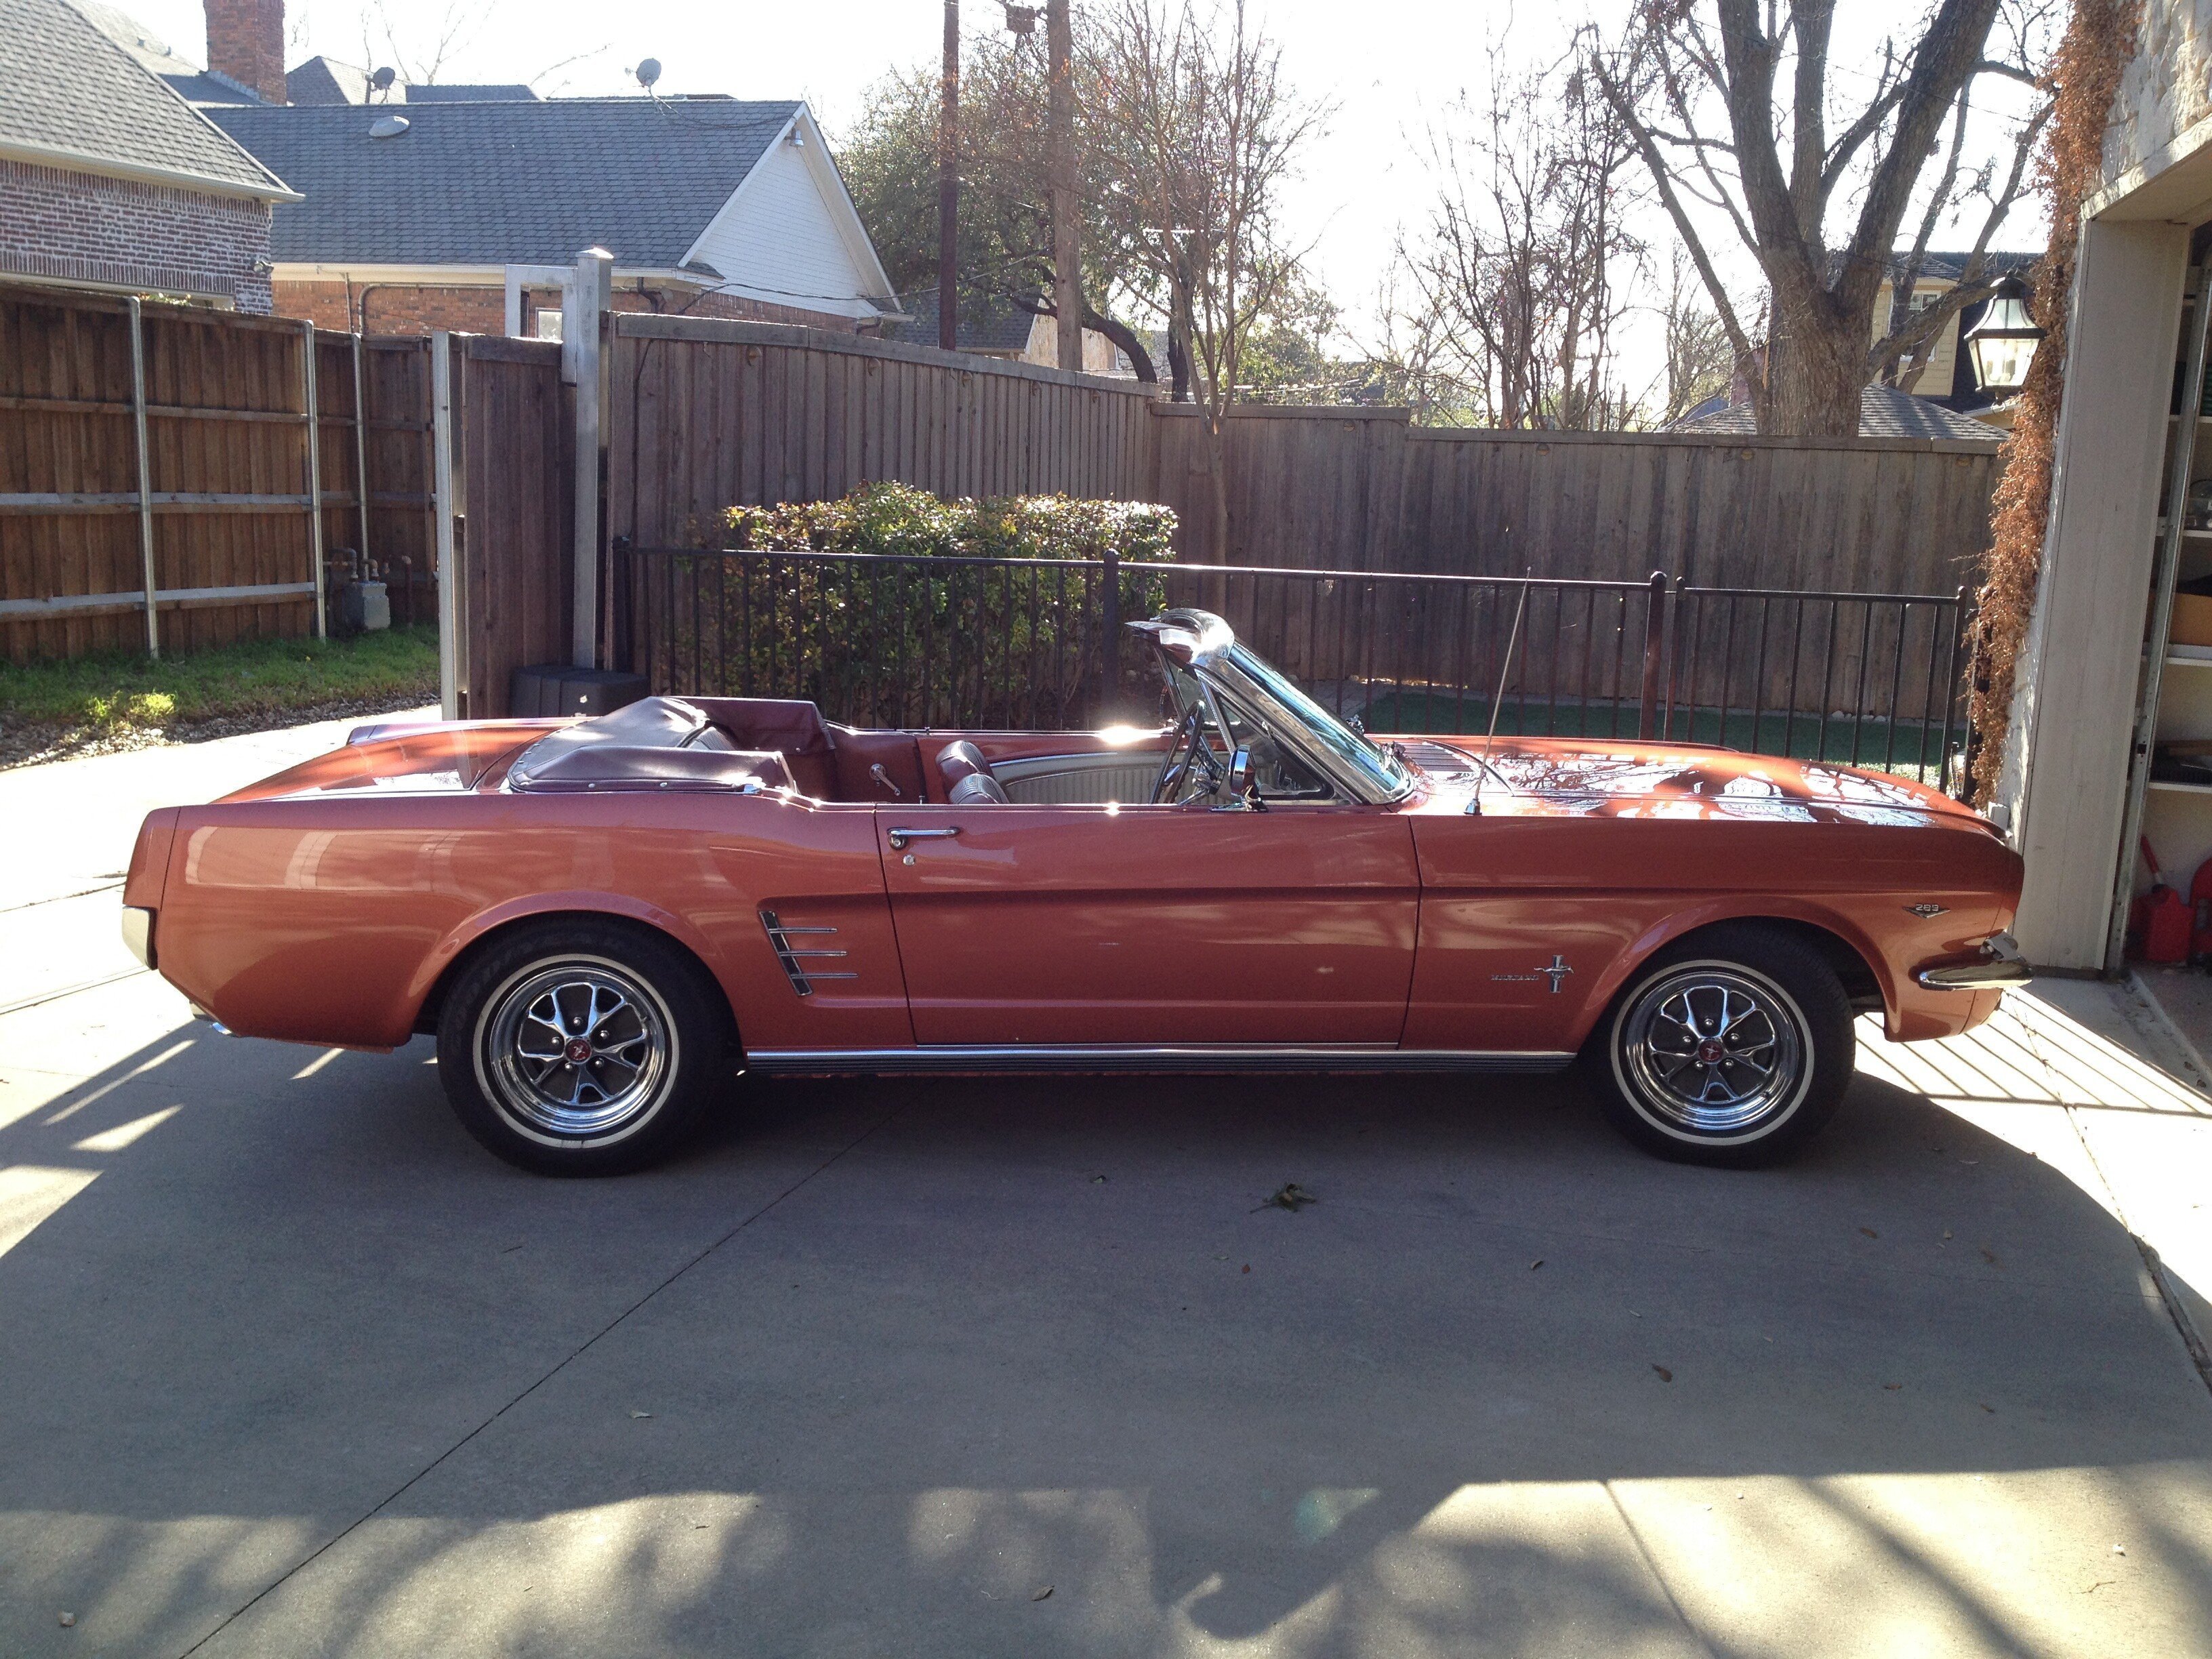 1966 Ford Mustang Conv. & 1969 Ford Mustang Classics for Sale - Classics on Autotrader markmcfarlin.com